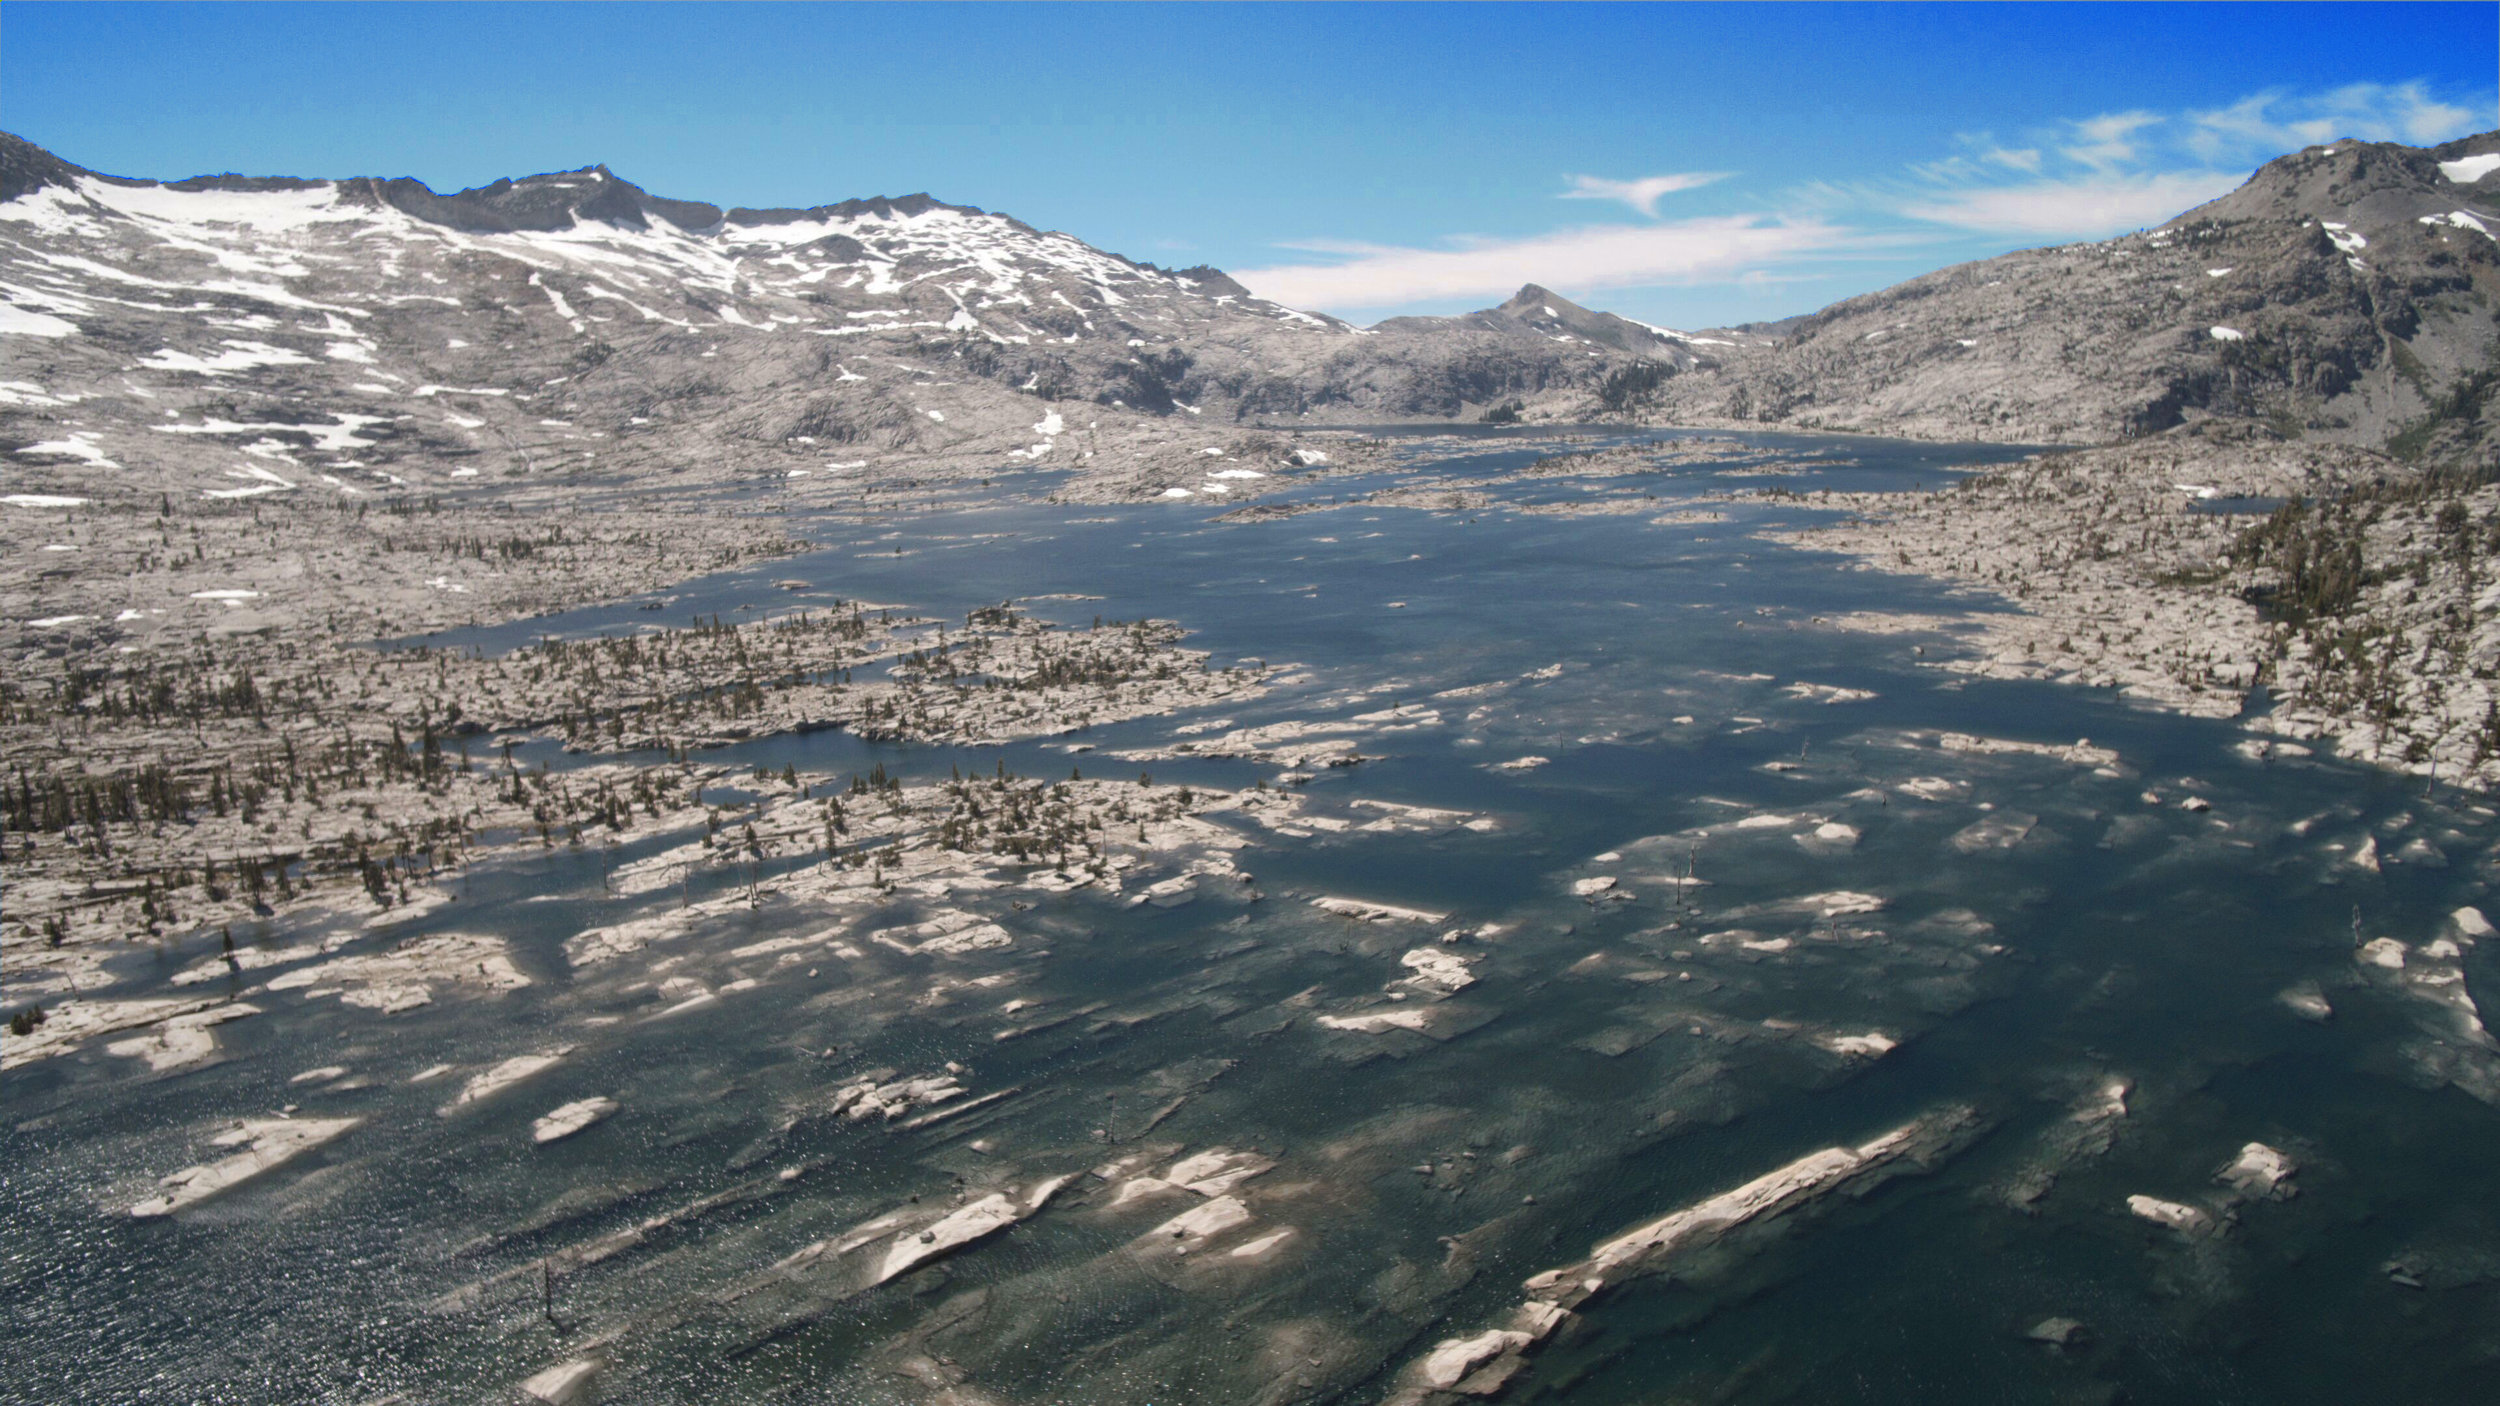 Aerial Photography in Lake Tahoe Area